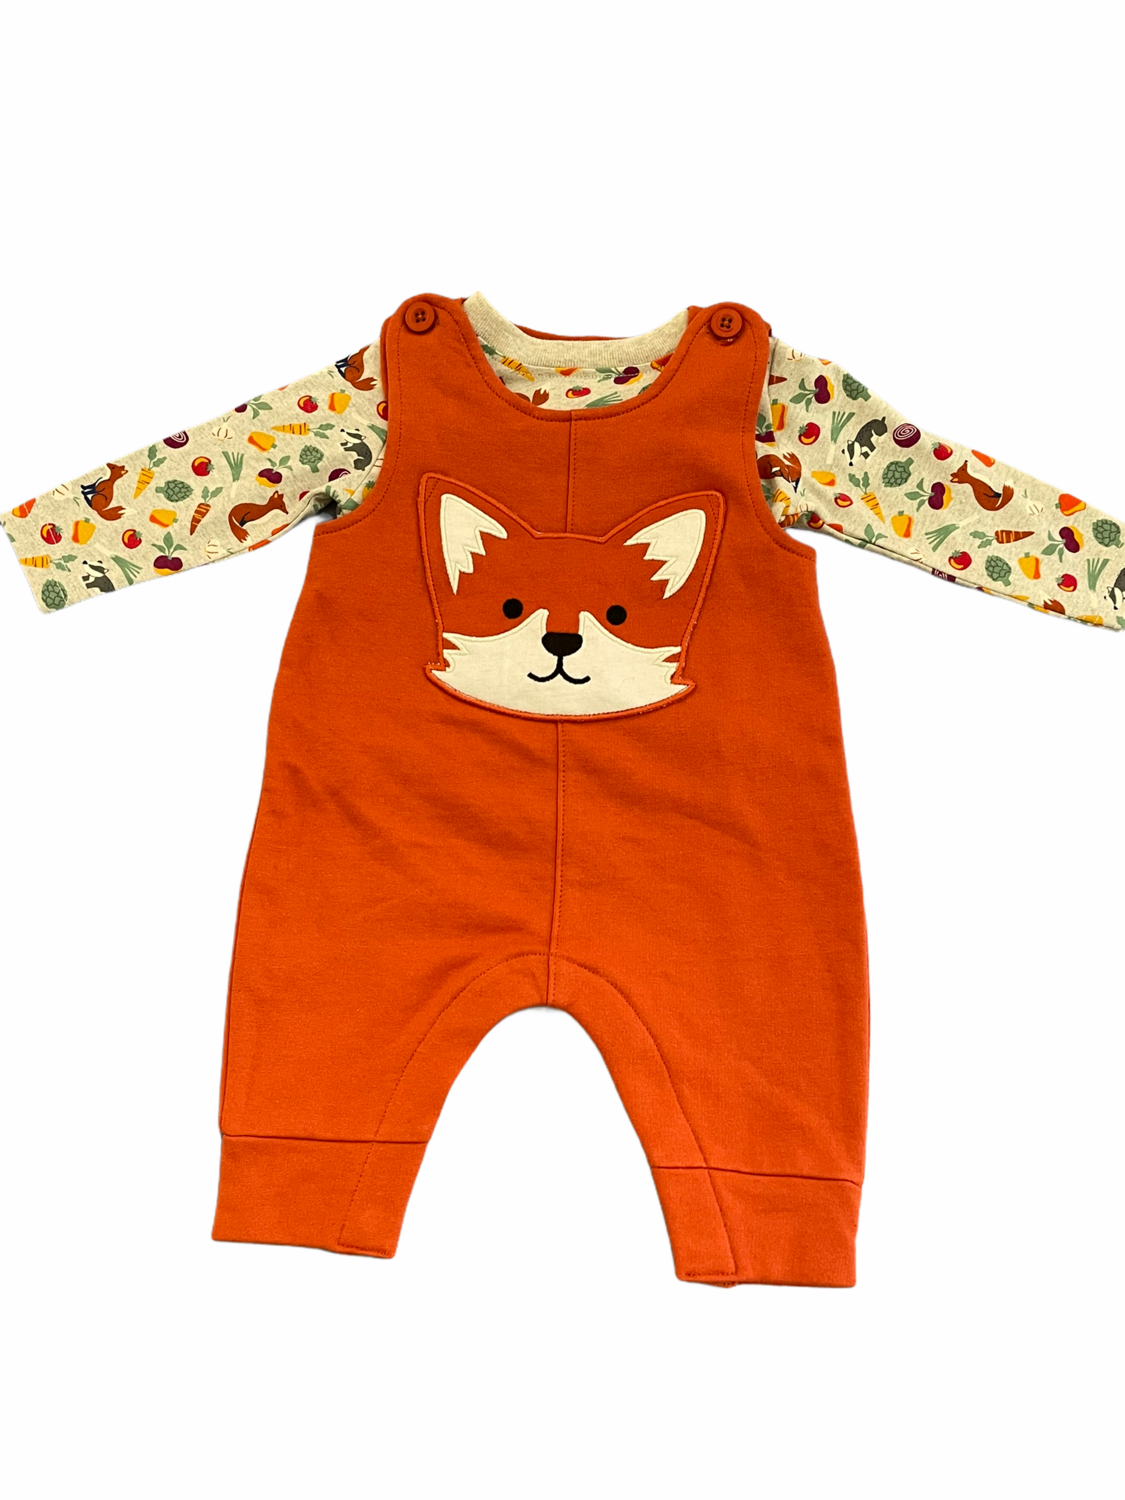 Jojo overall sets 0-3 months